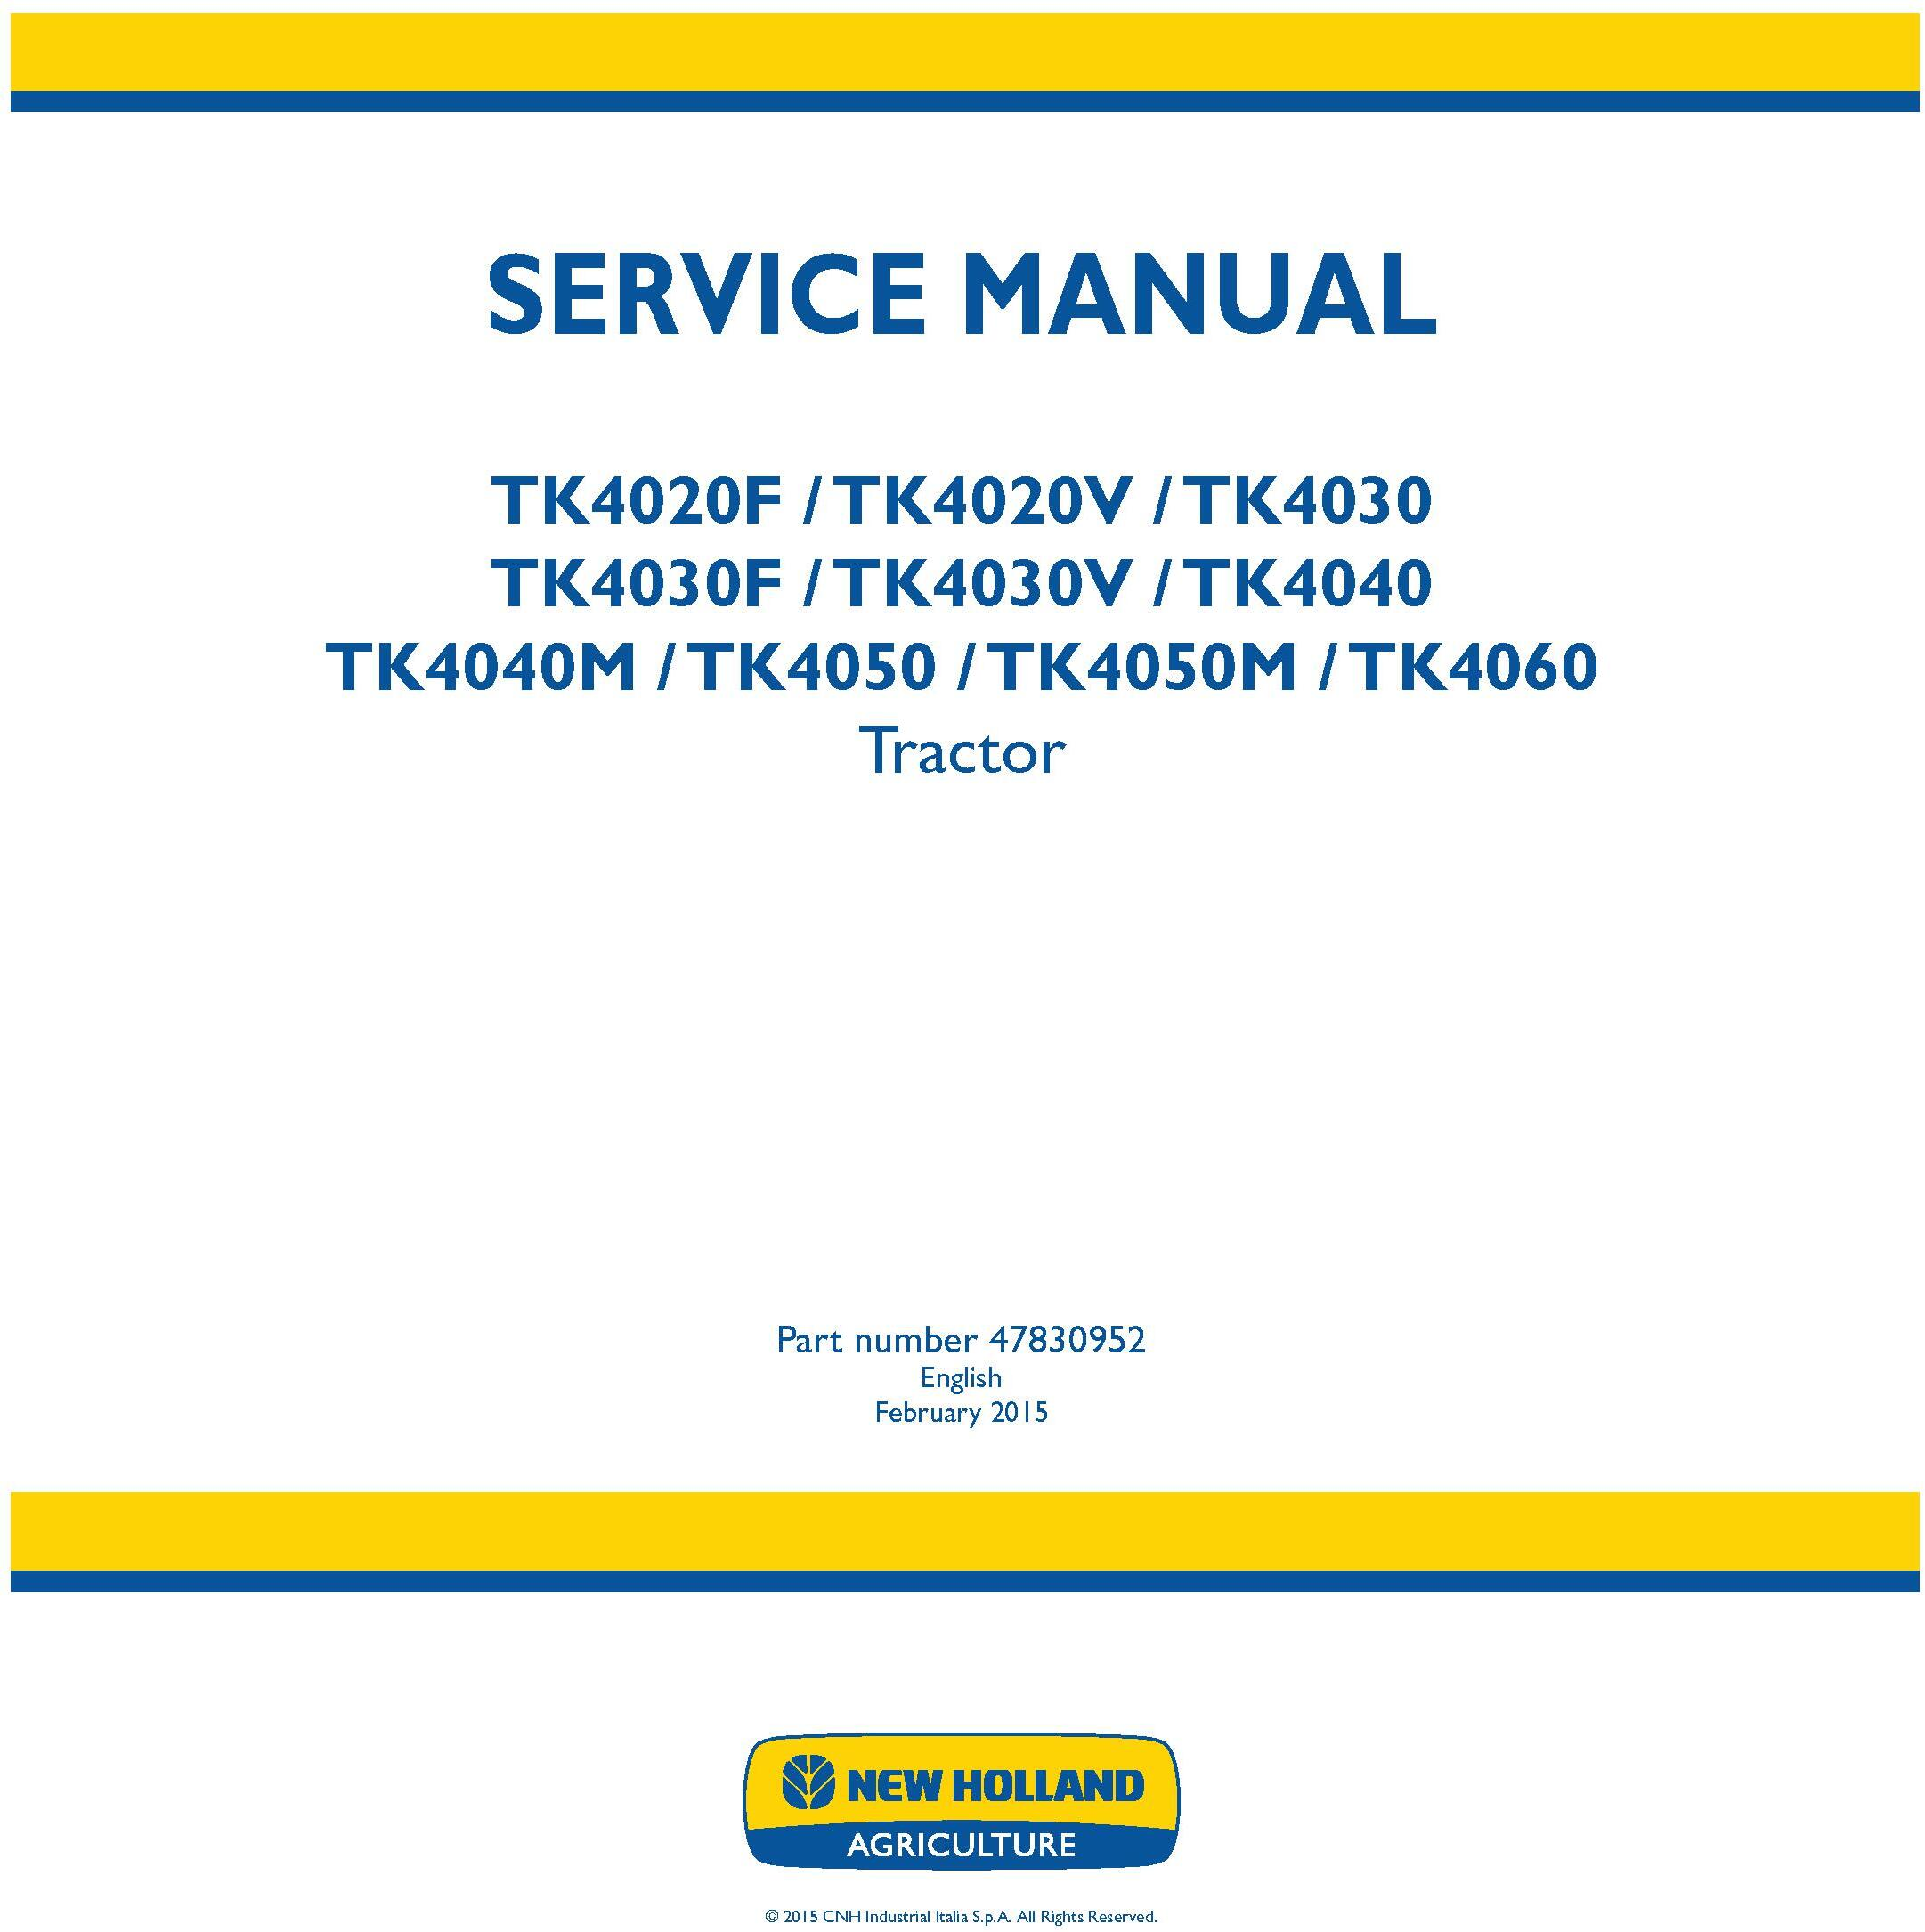 New Holland TK4020 F/V, TK4030 / F/V, TK4040 /M, TK4050 /M, TK4060 Crawler Tractor Service Manual - 19419